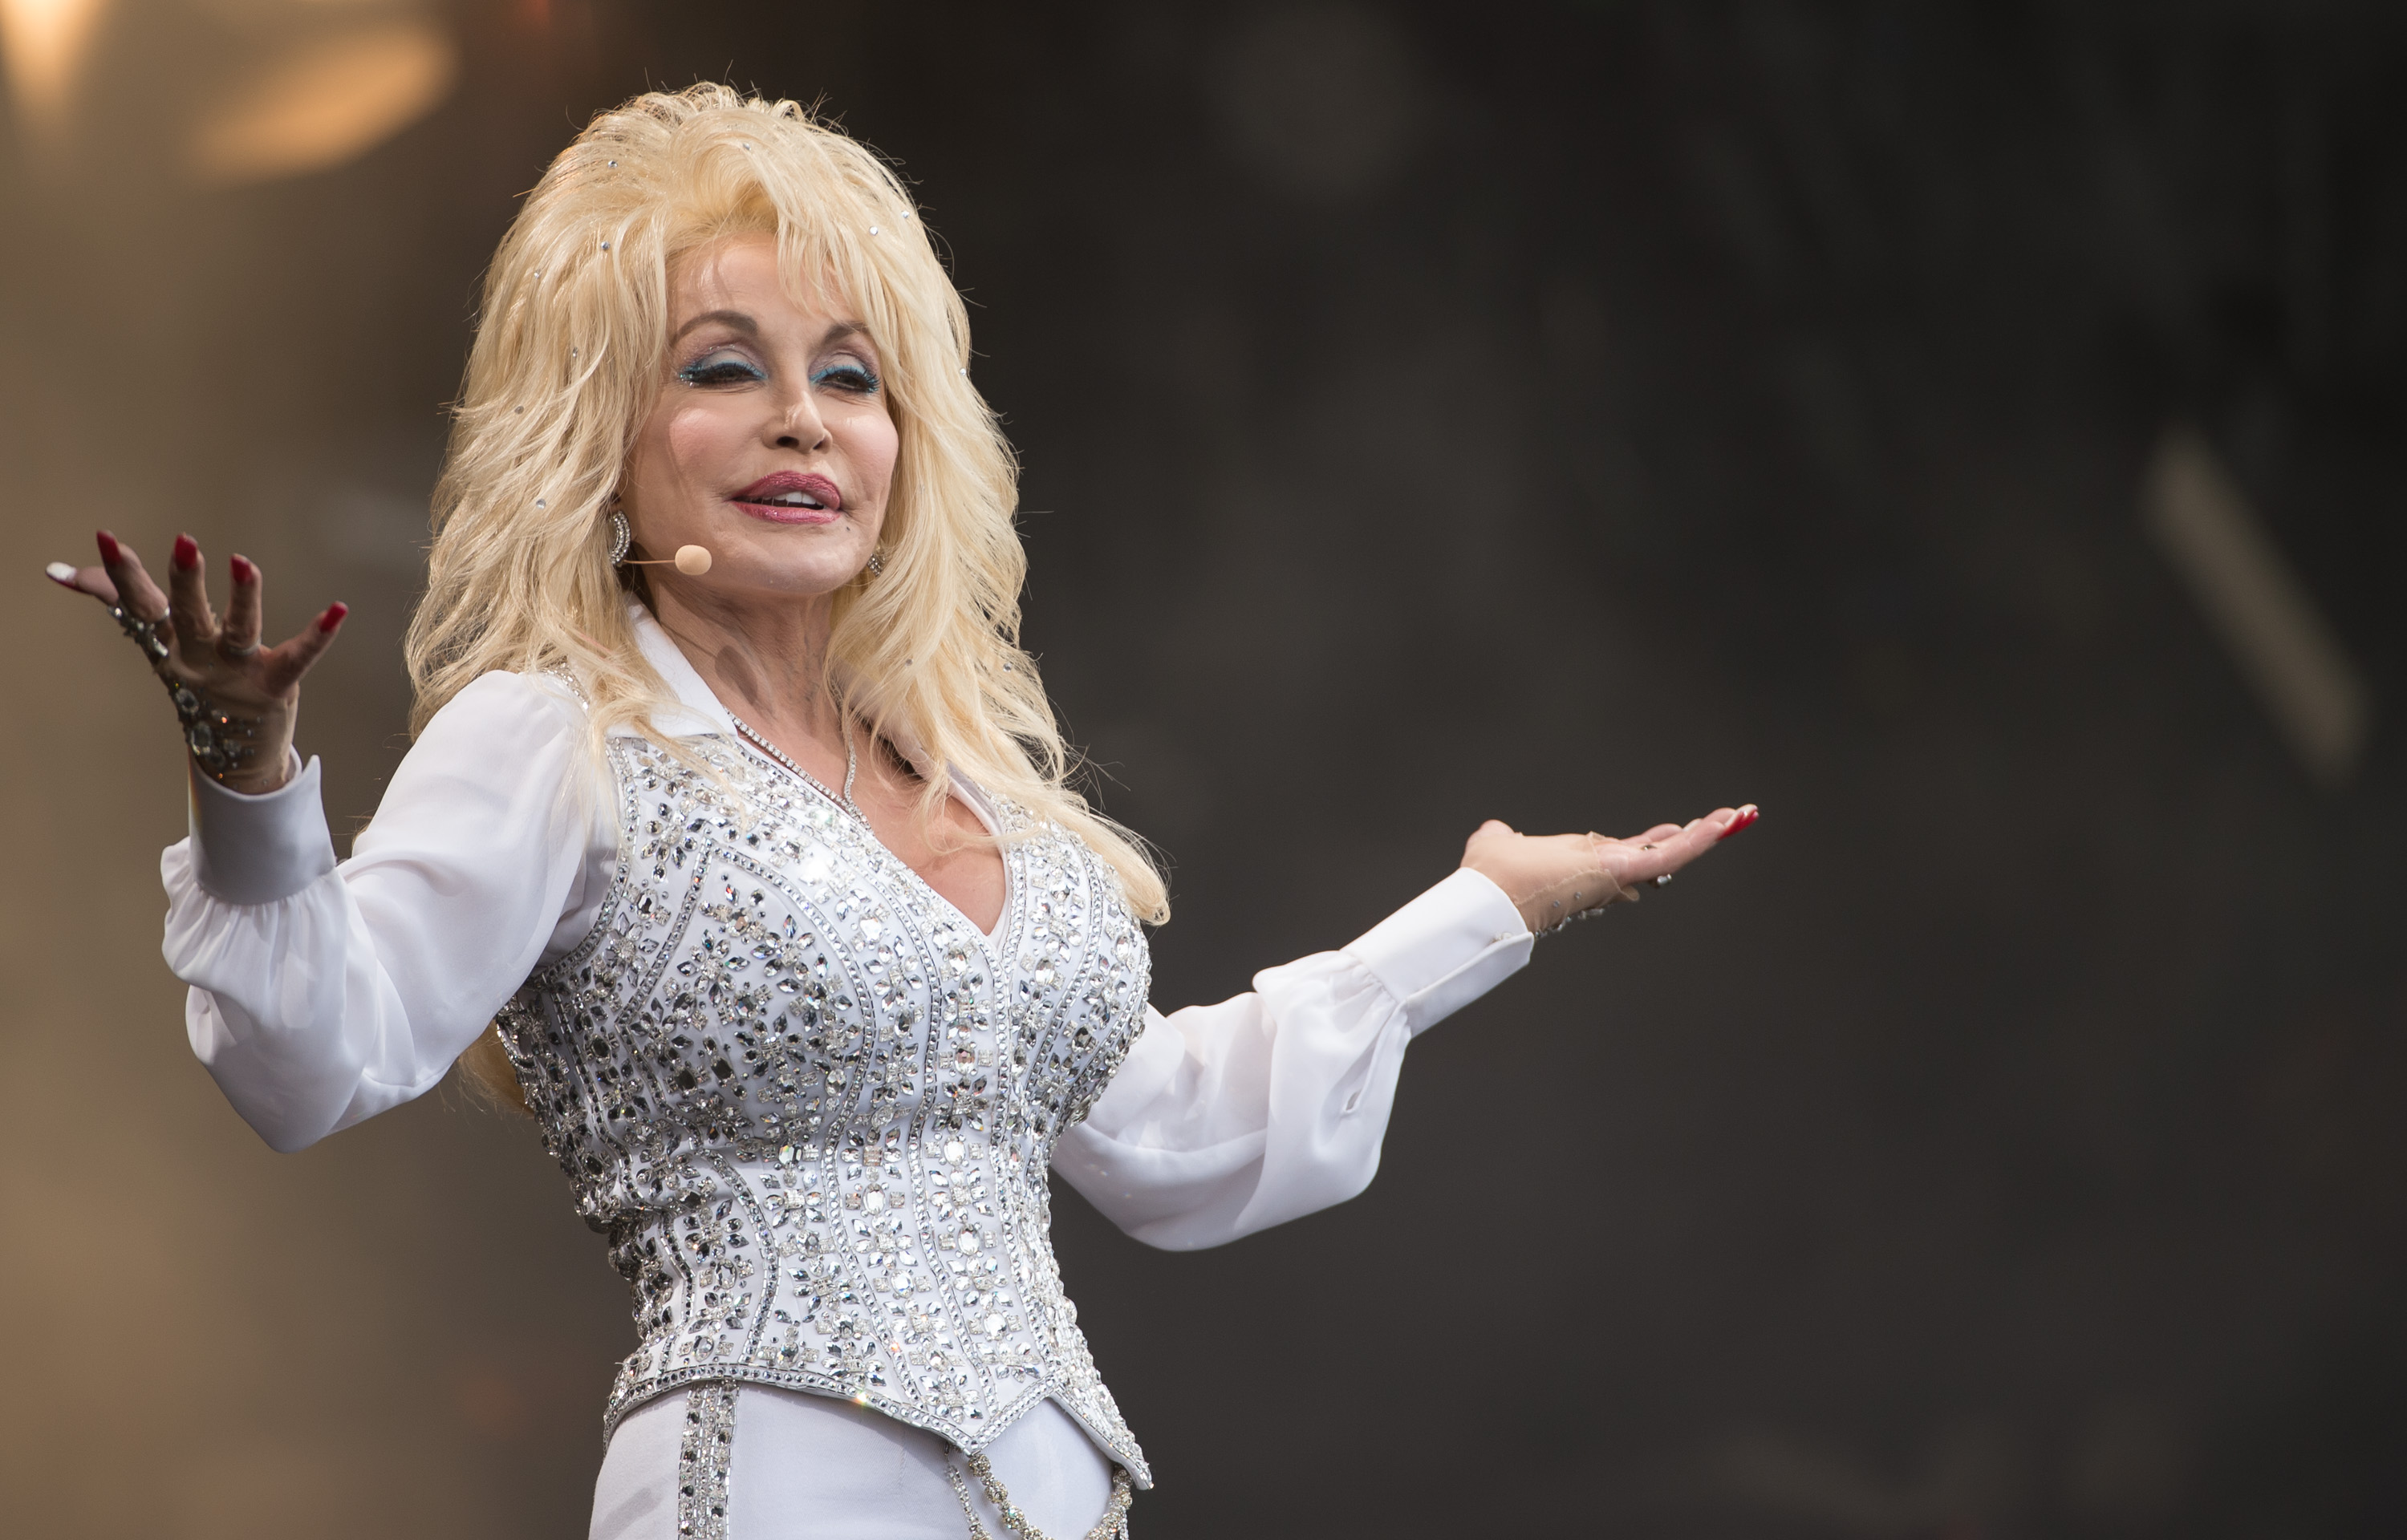 Dolly Parton Is Getting Her Own Jeni's Ice Cream Flavor